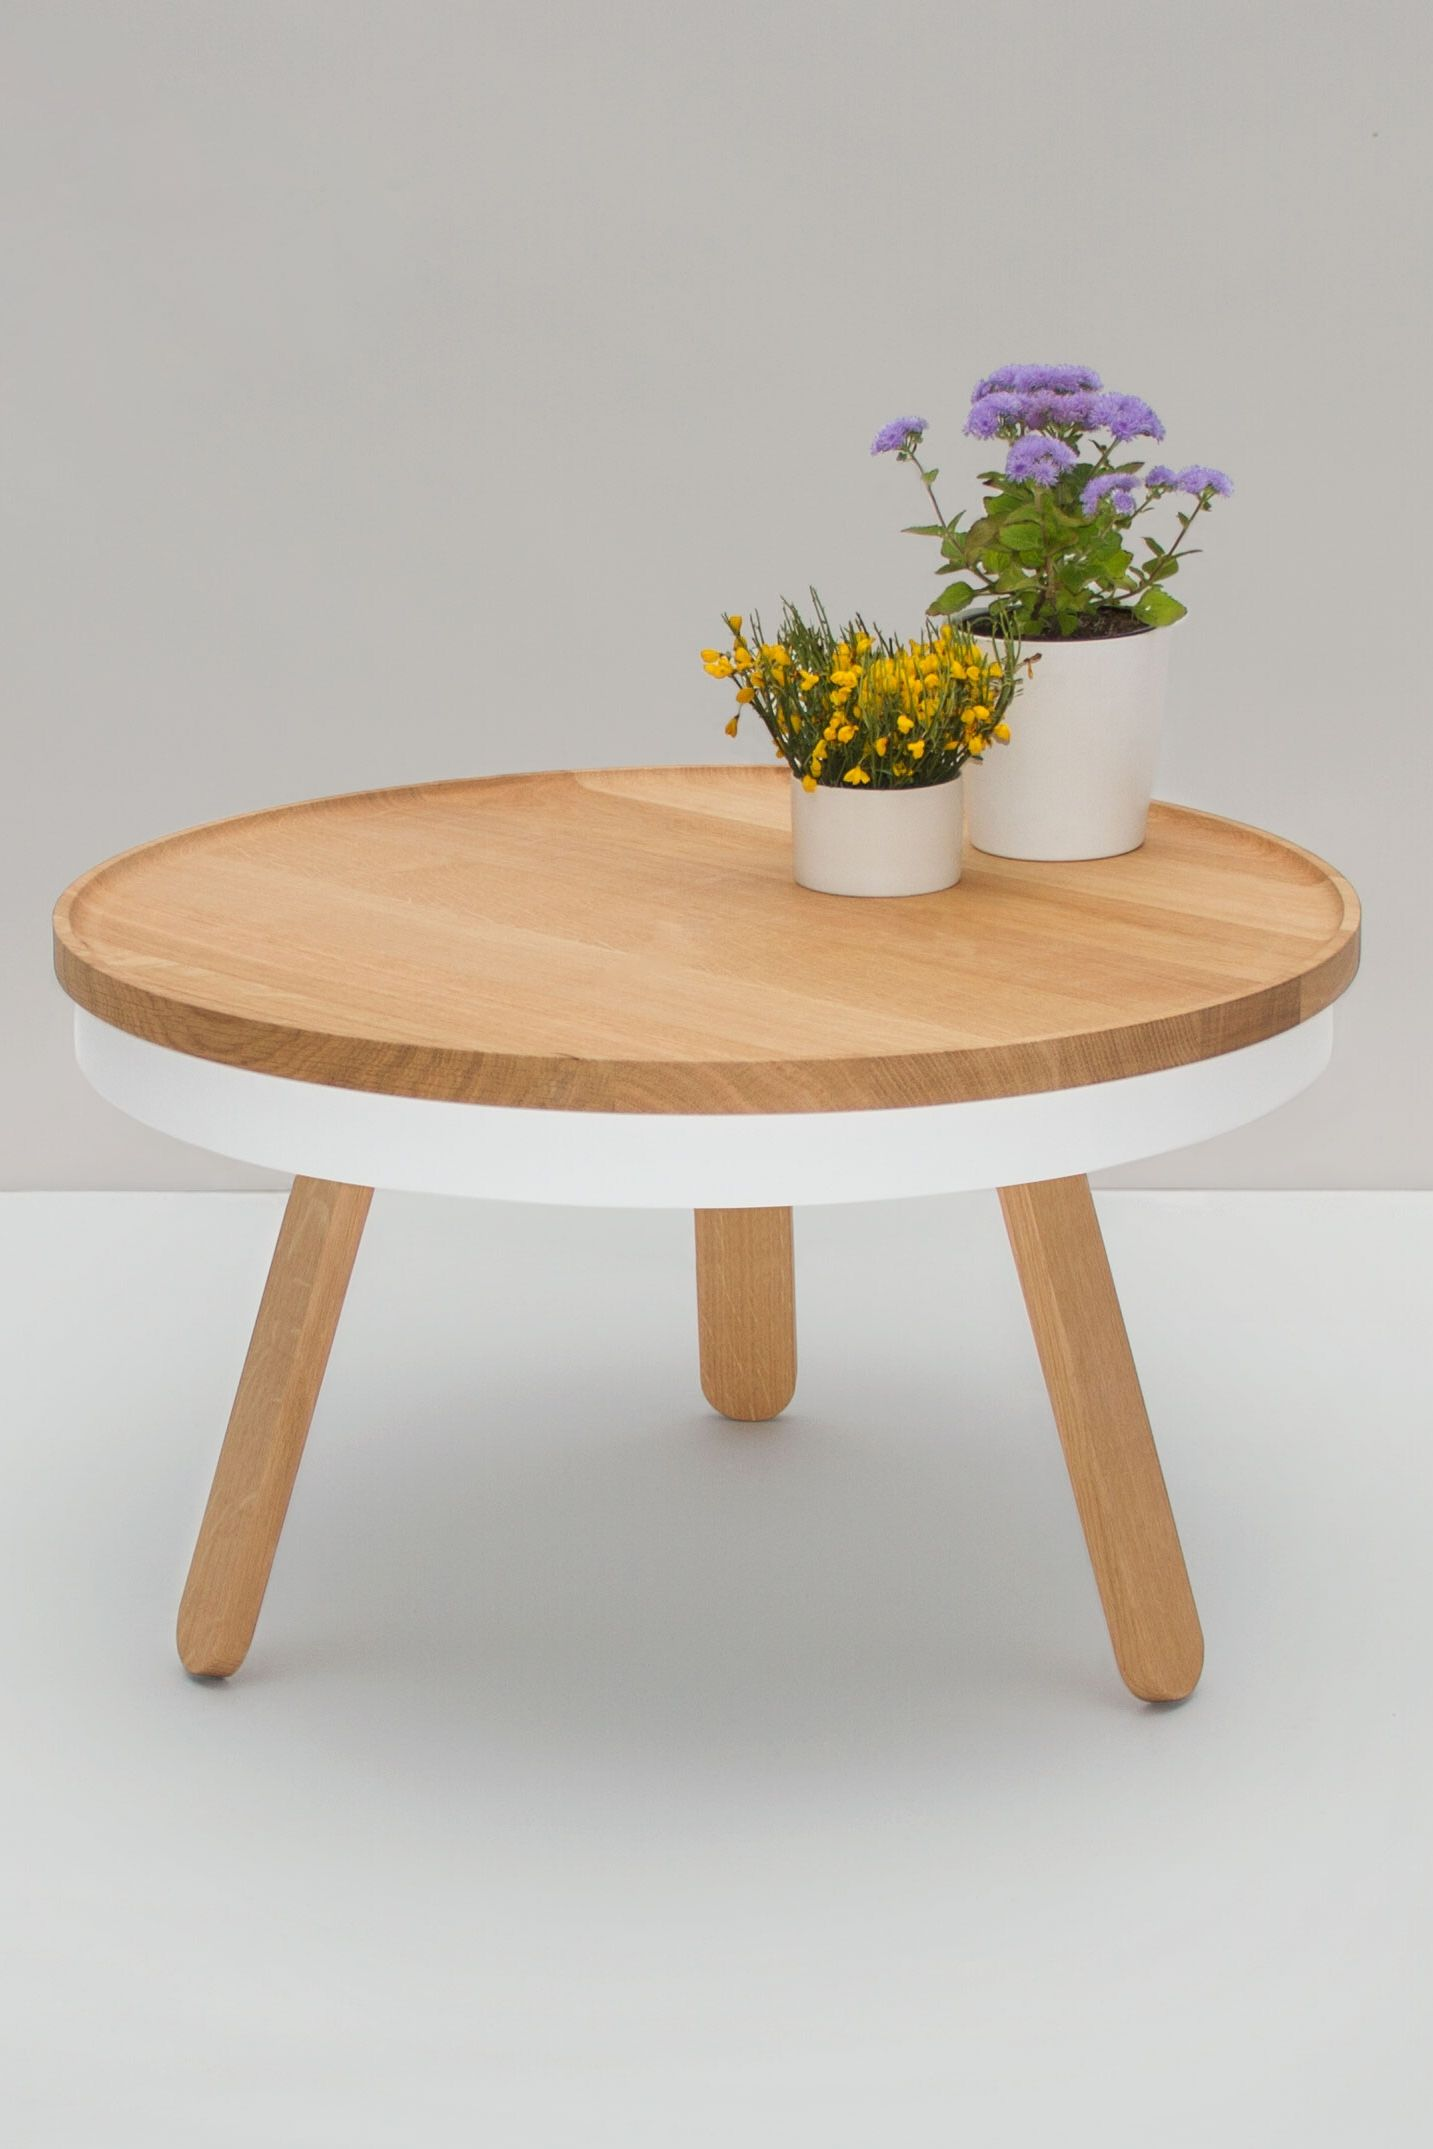 Oak Wood And White Center Table Center Table Table Coffee Table Furniture [ 2149 x 1433 Pixel ]